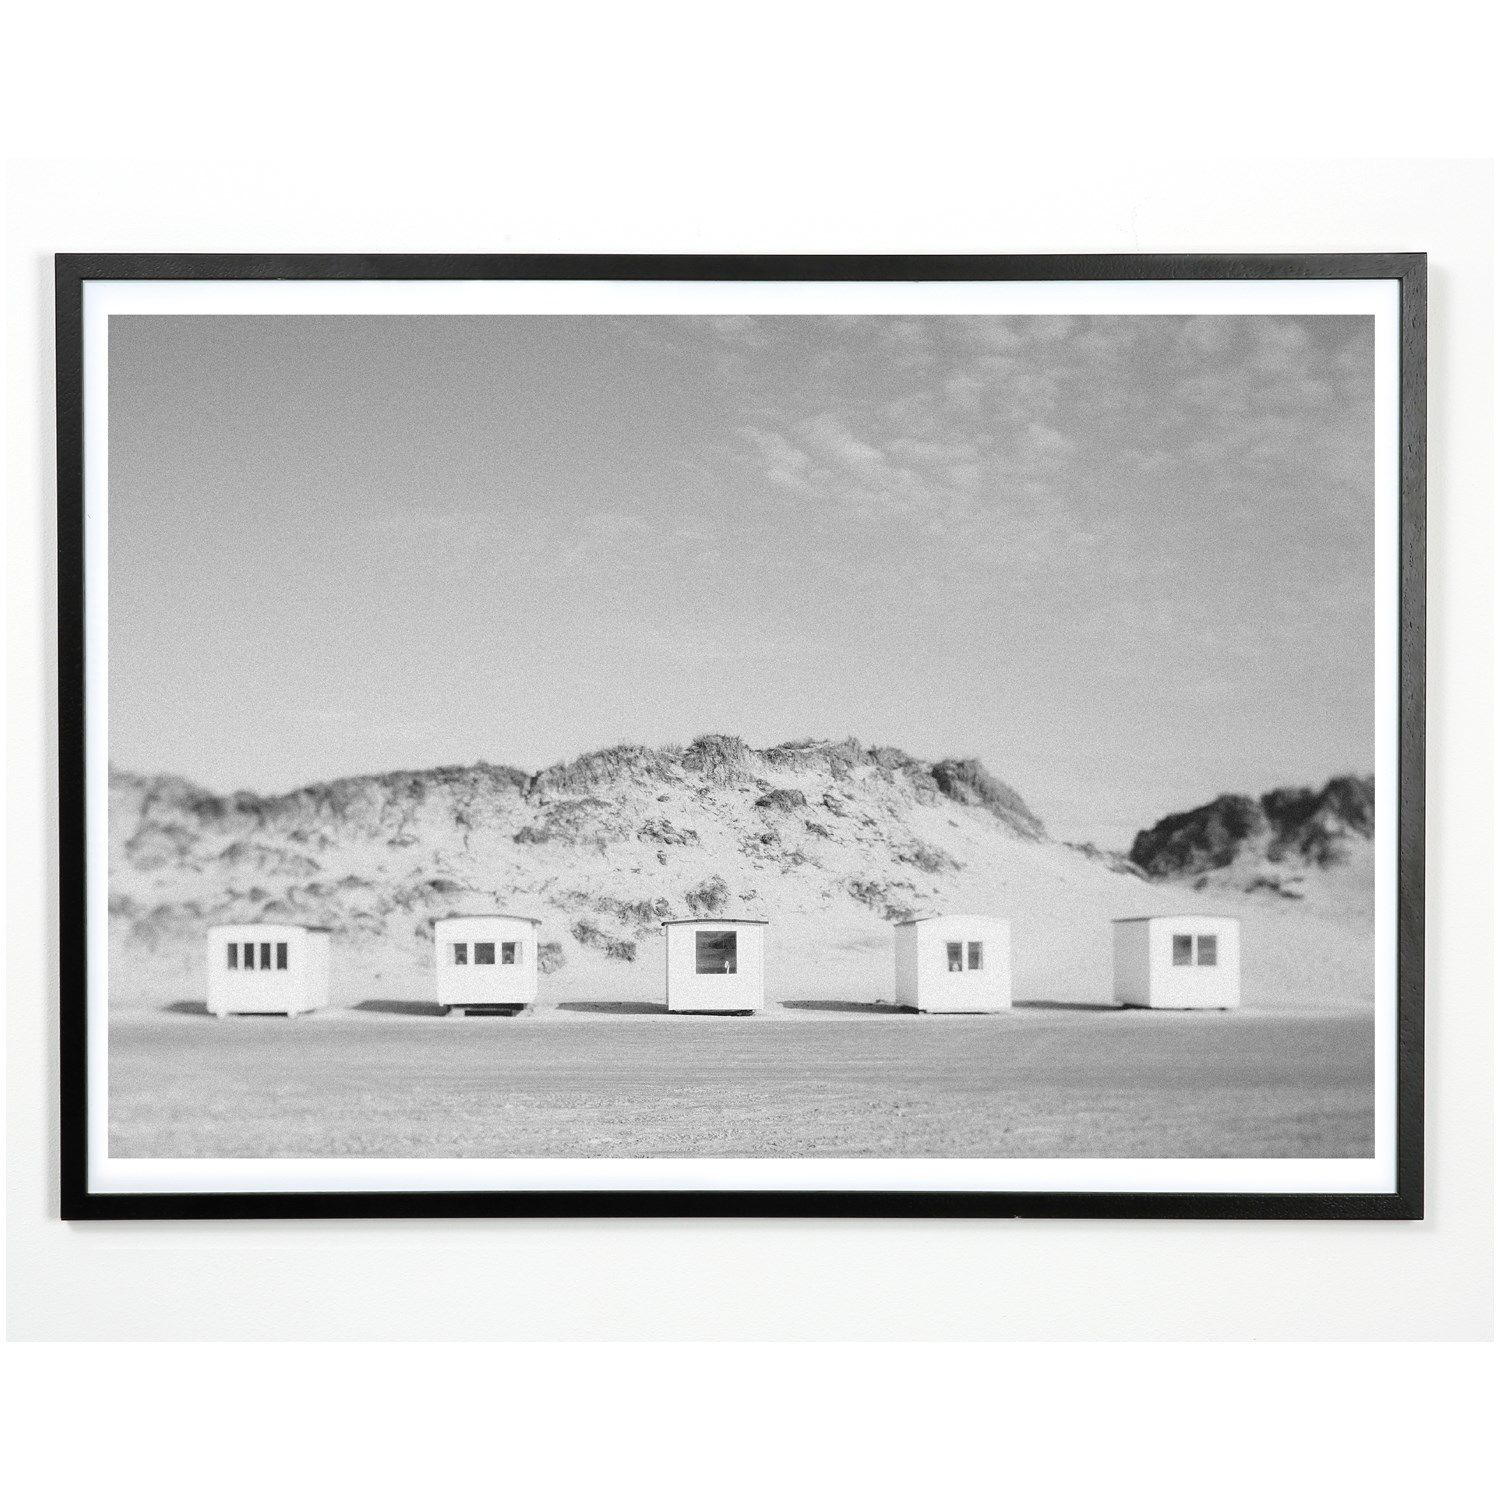 Applicata - Plakat - Beach house - 50x70 cm